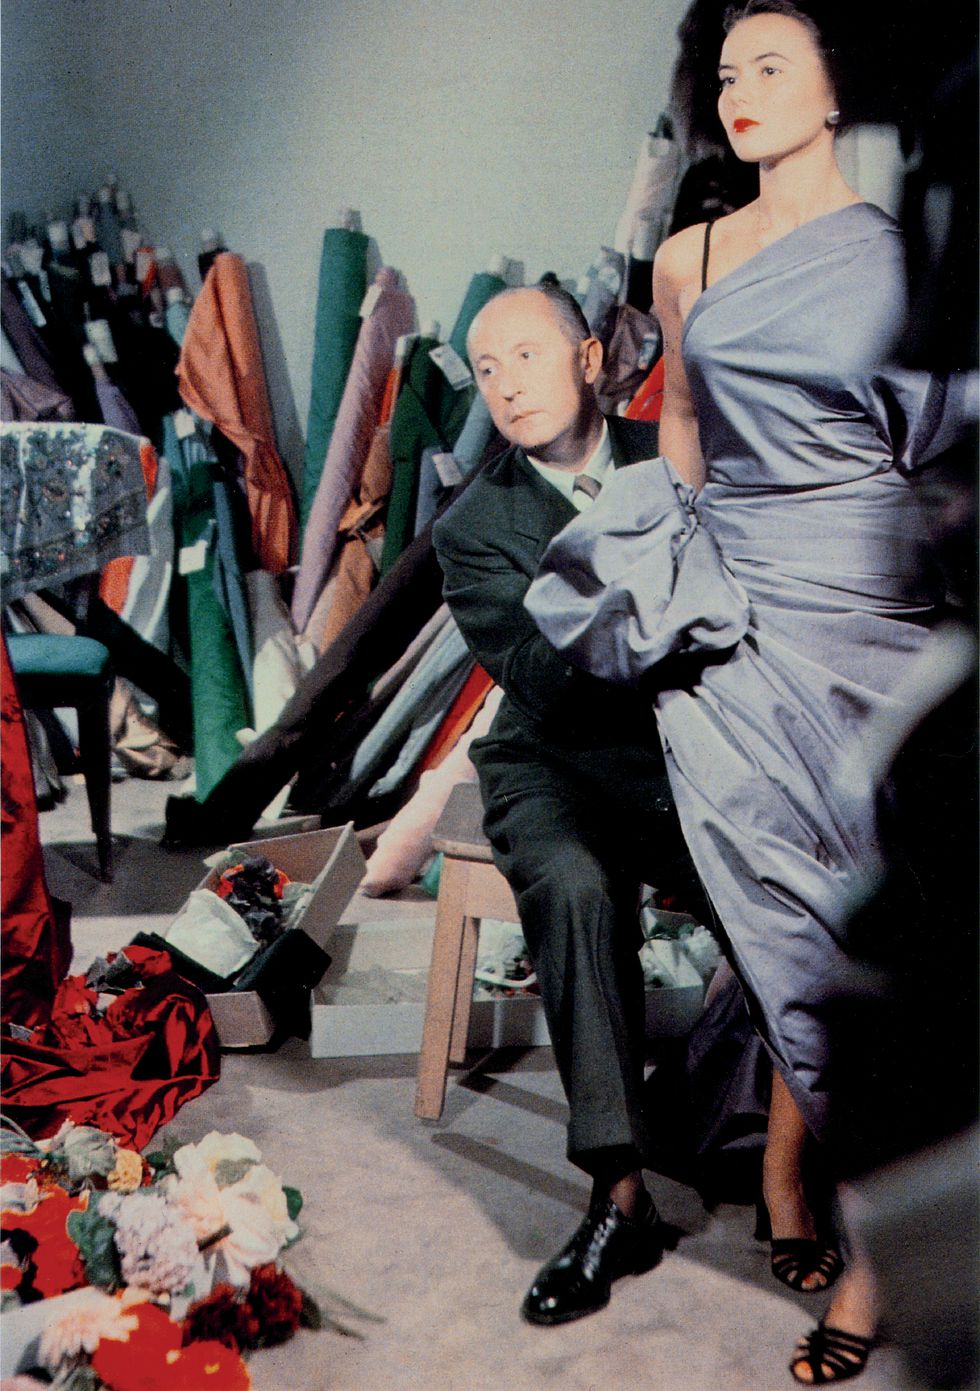 dior-v-a-christian-dior-with-model-sylvie-circa-1948-courtesy-of-christian-dior-preview-1530545372